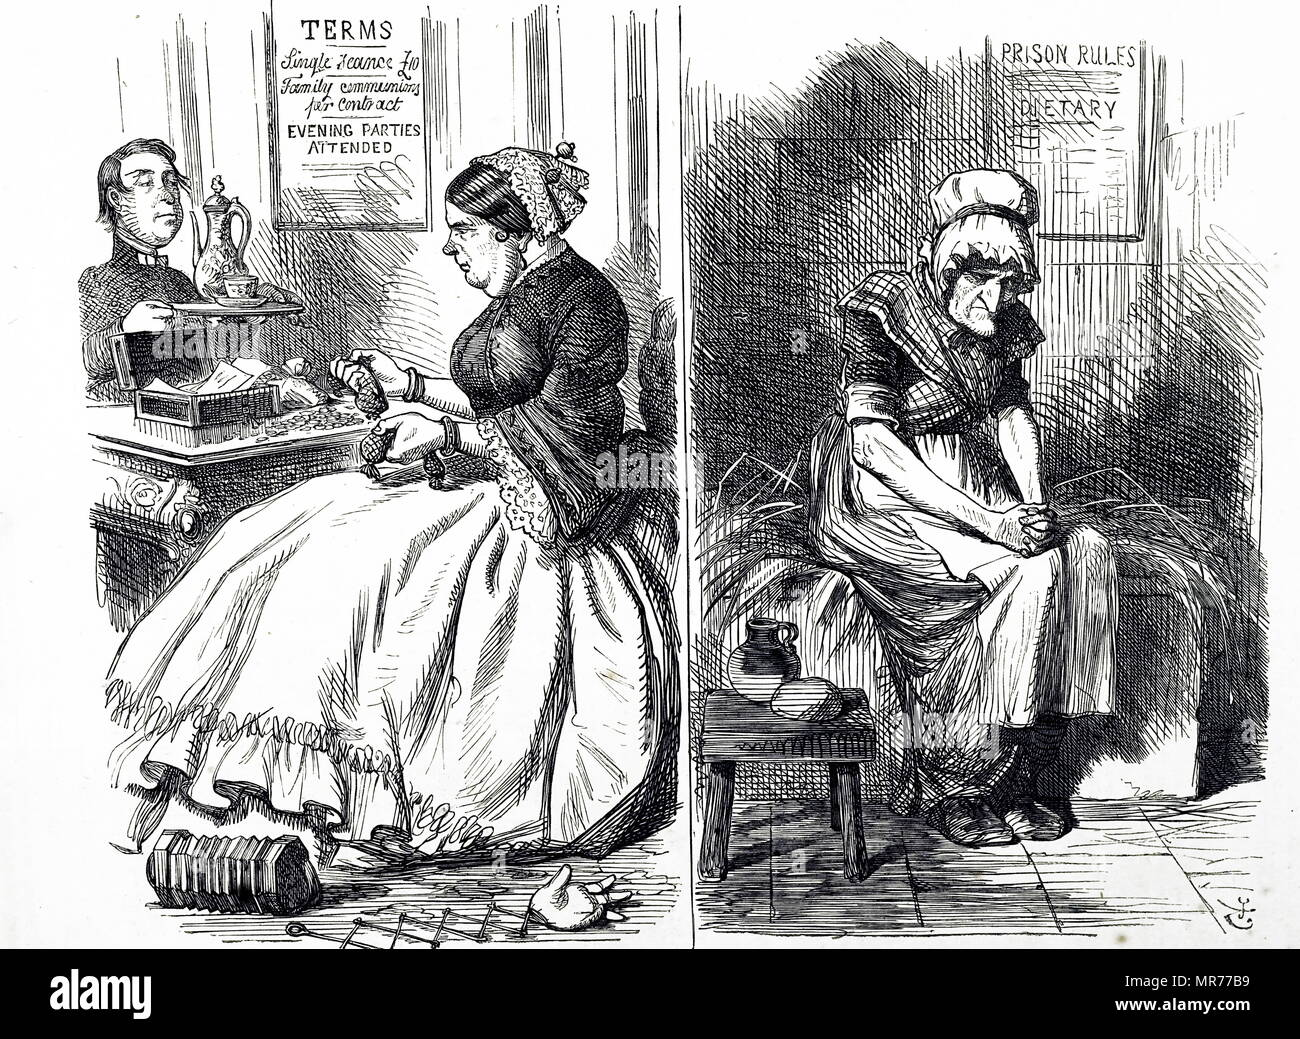 Cartoon satirising two aspects of women's lives during the 19th century. Left: A middle-class woman has tea with a cleric. Right: An elderly prisoner sits in her cell. Dated 19th century - Stock Image